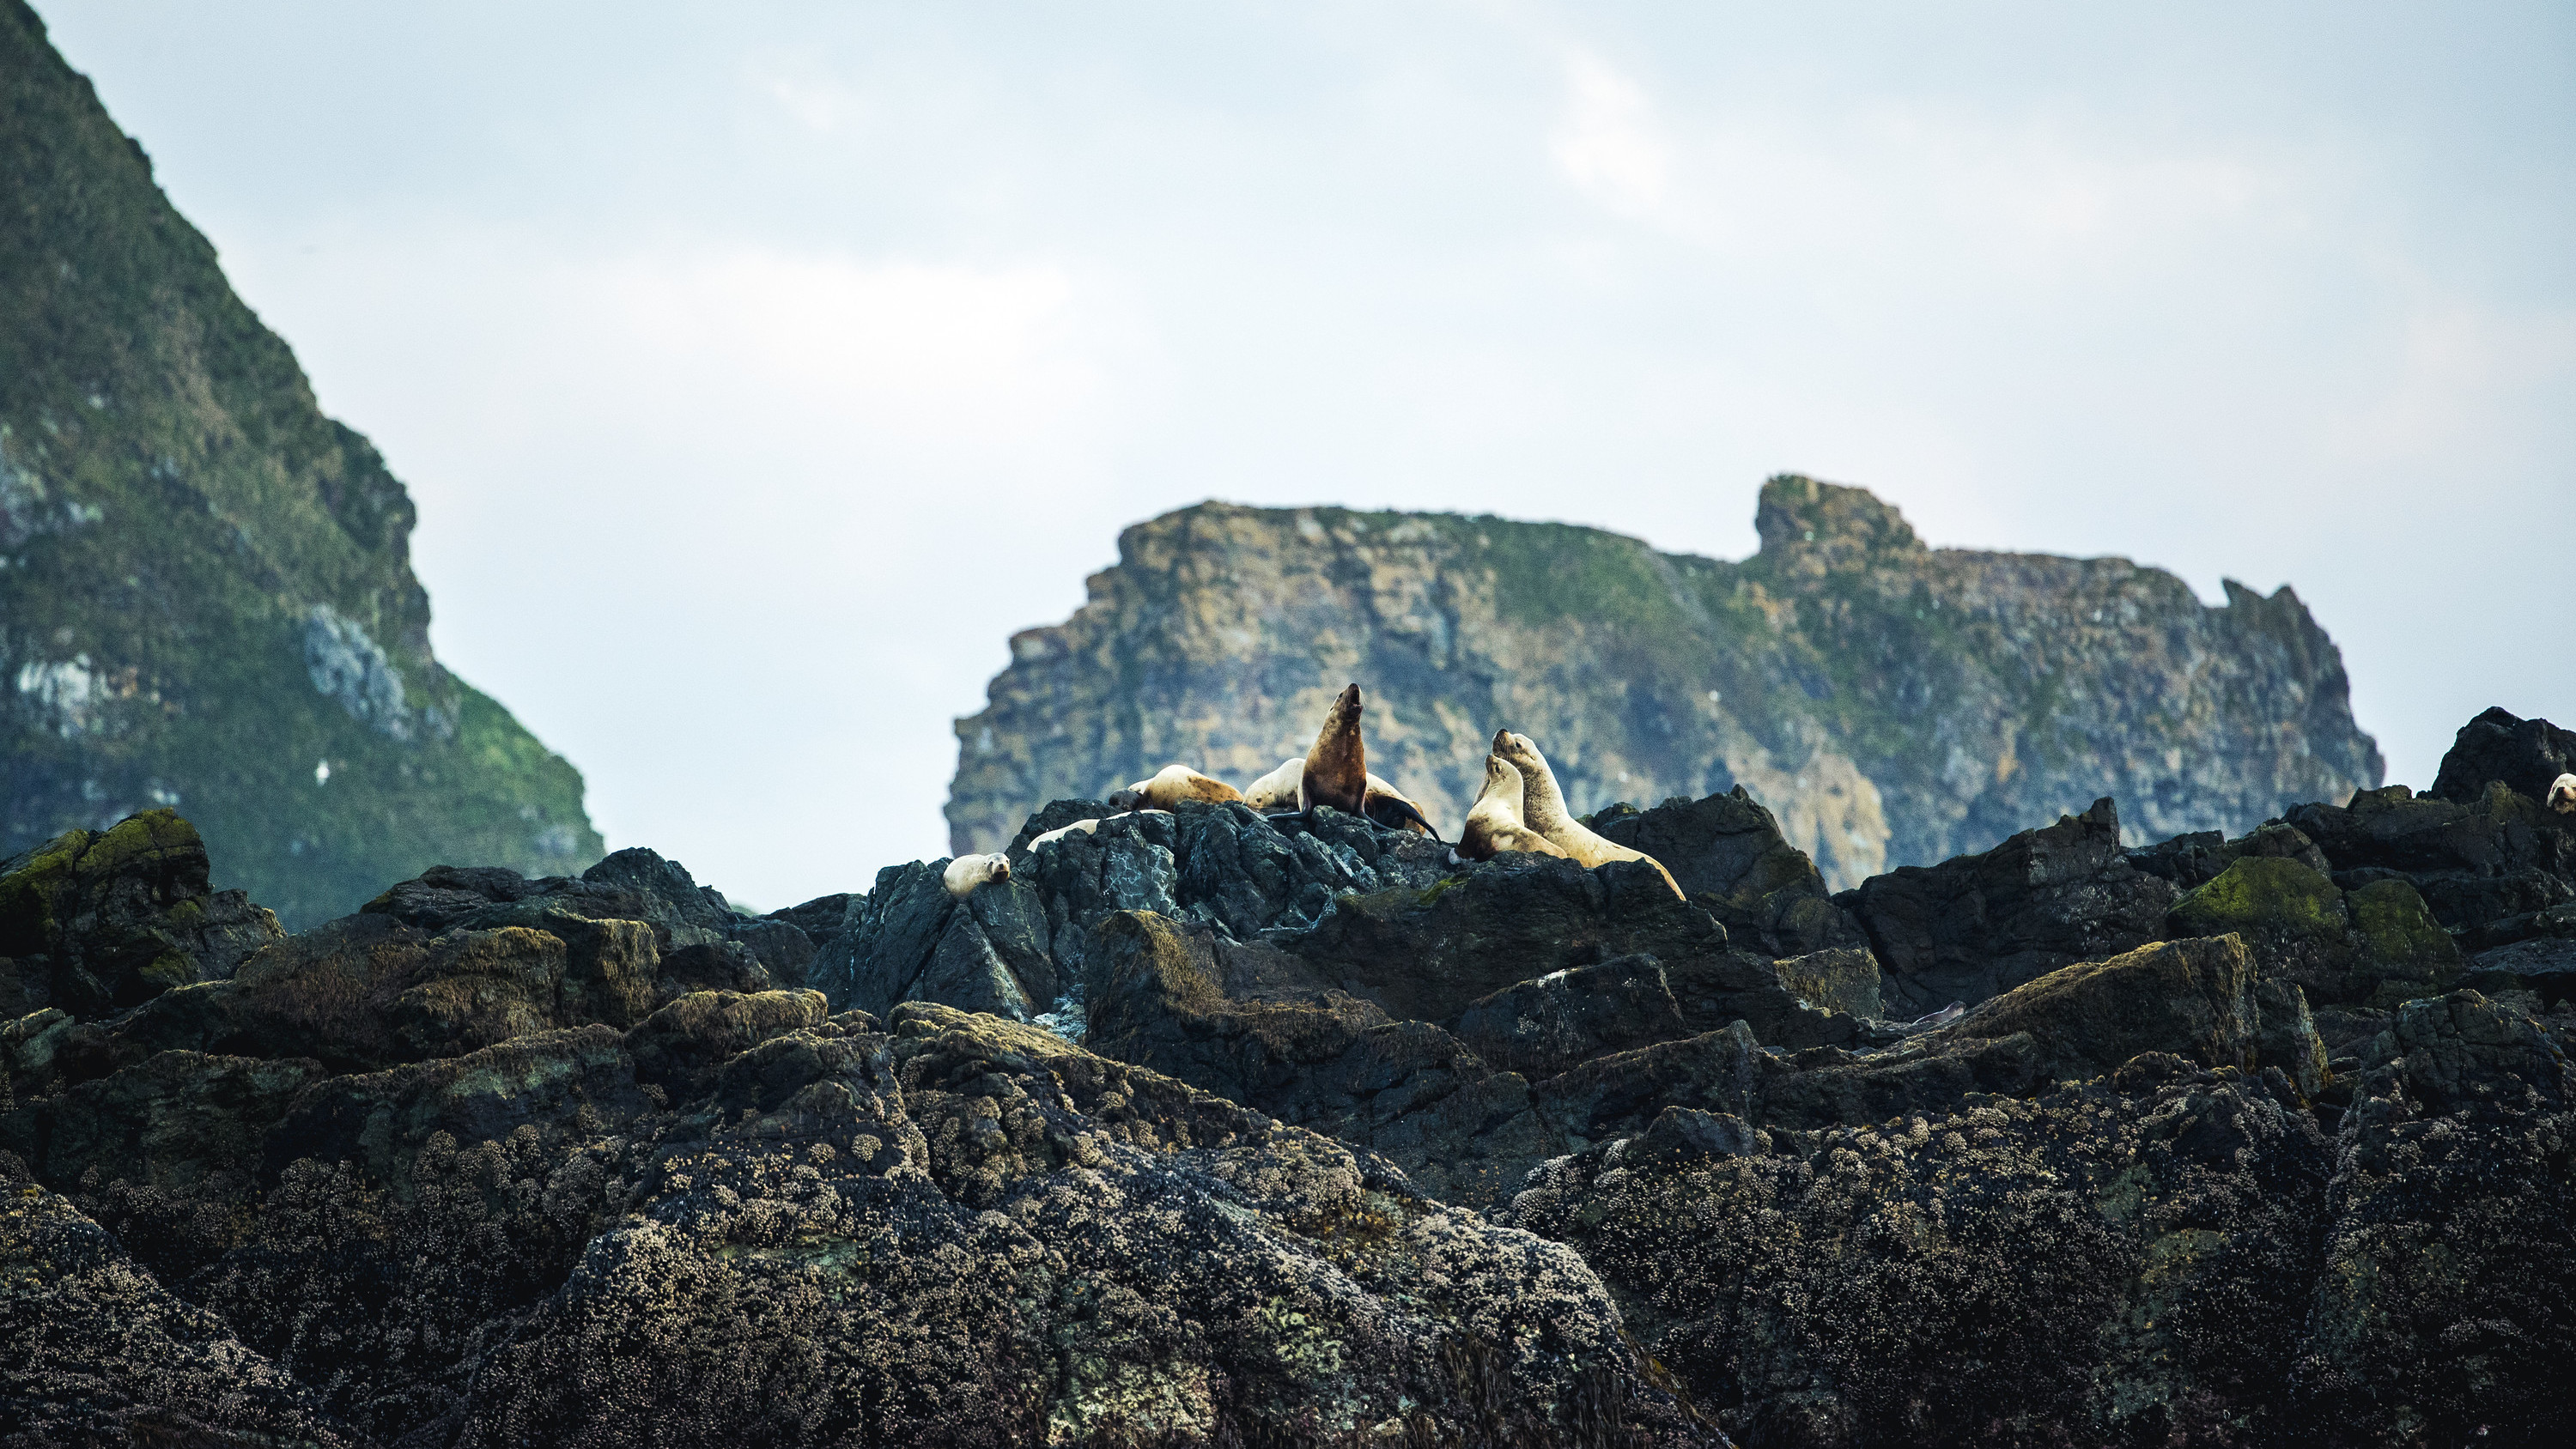 A small group of sea lions on rocky outcrop. (National Geographic for Disney+/Ryan Tidman)